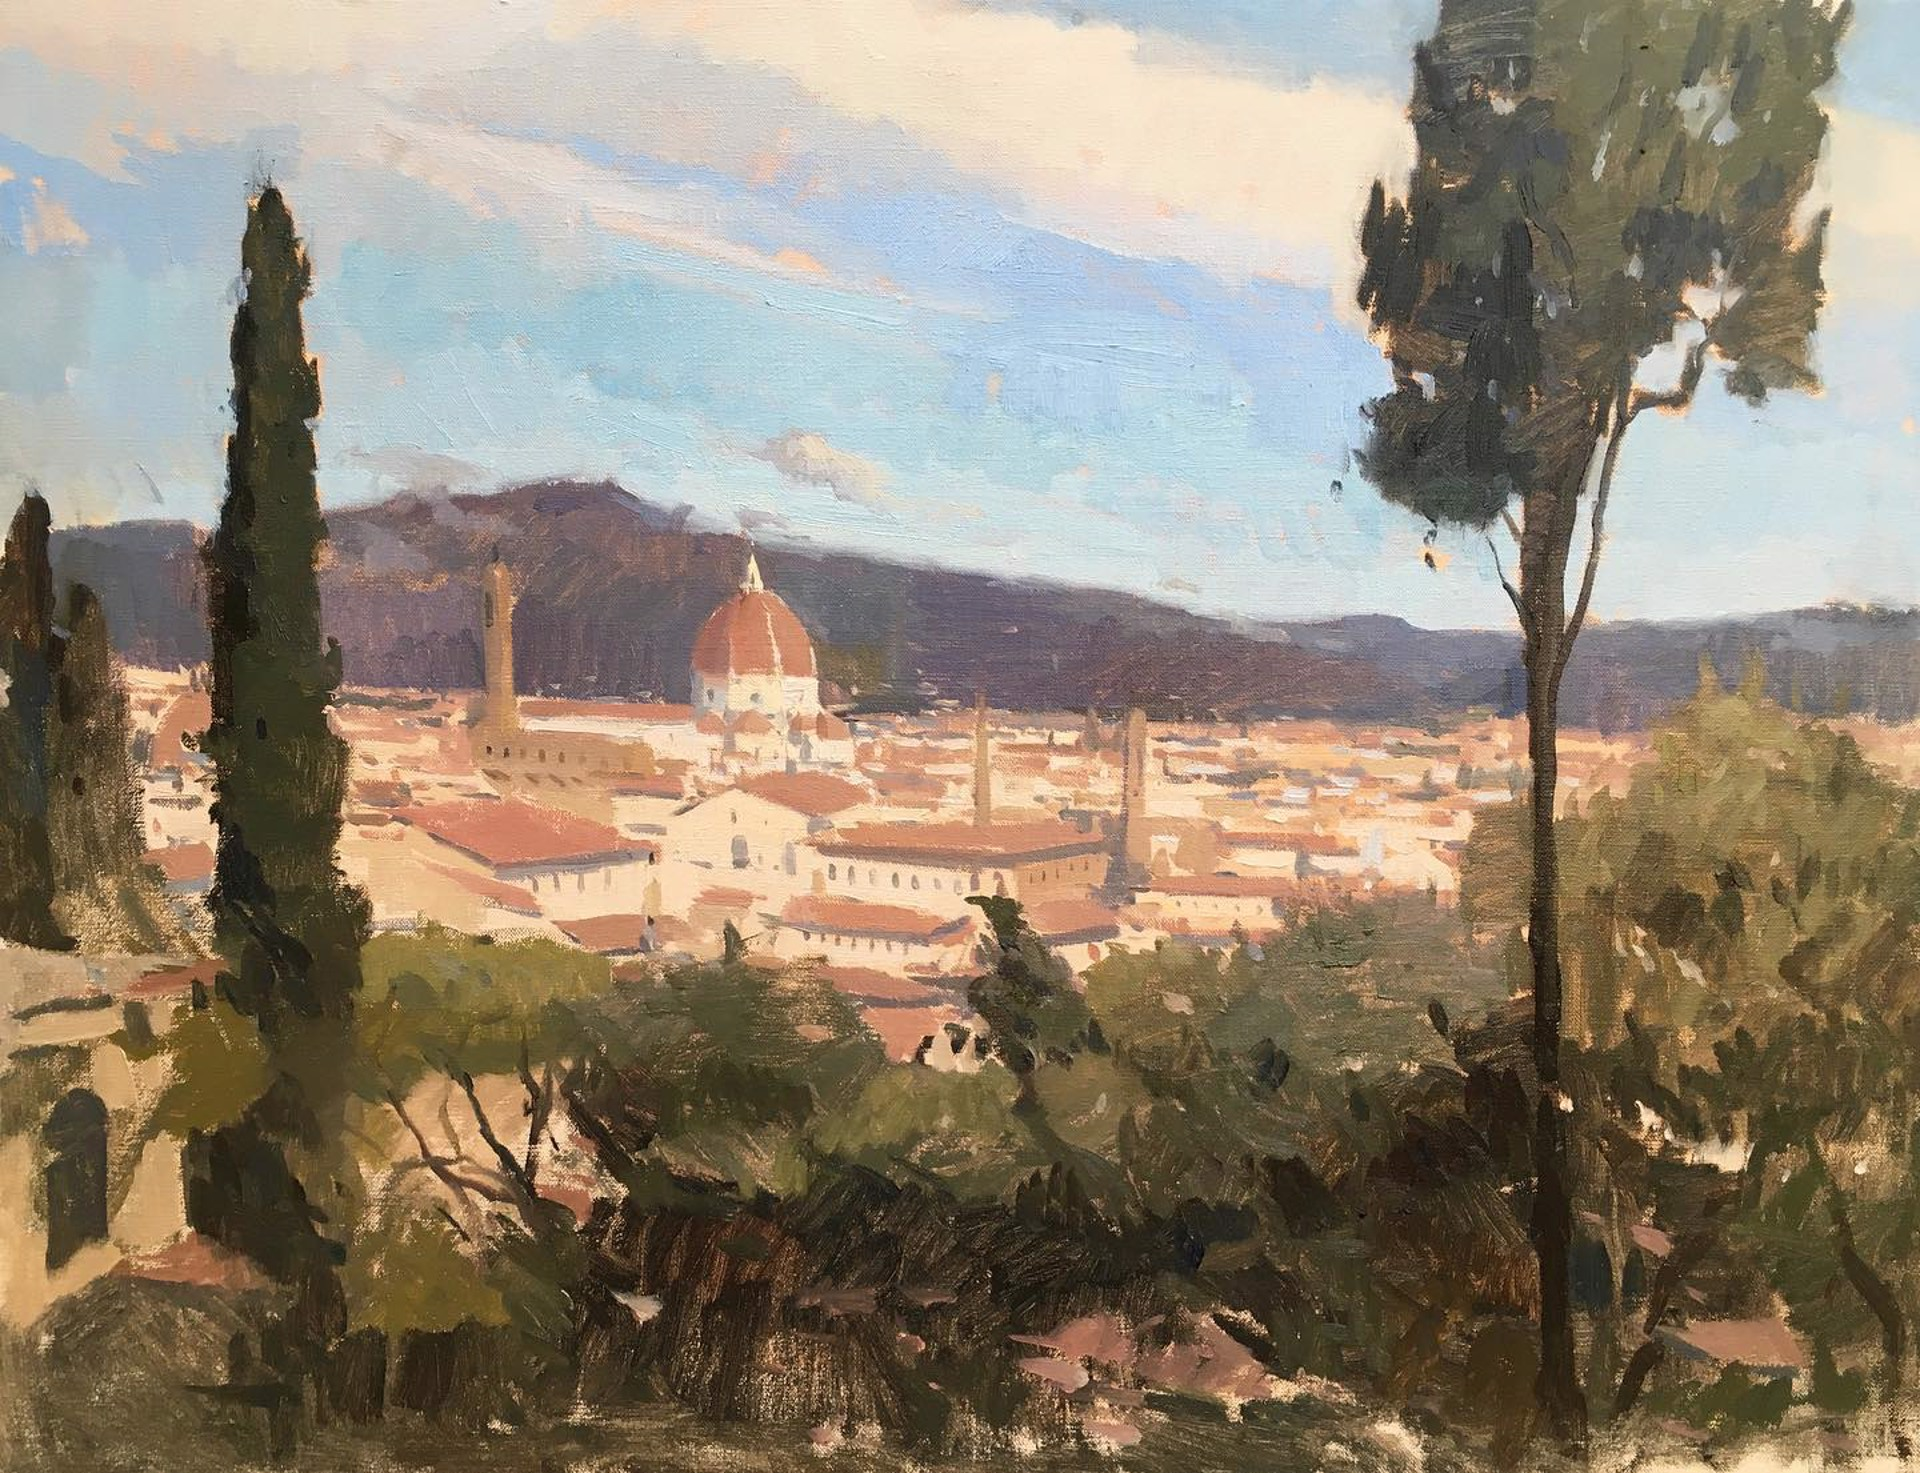 Florence Mornings by Tanvi Pathare